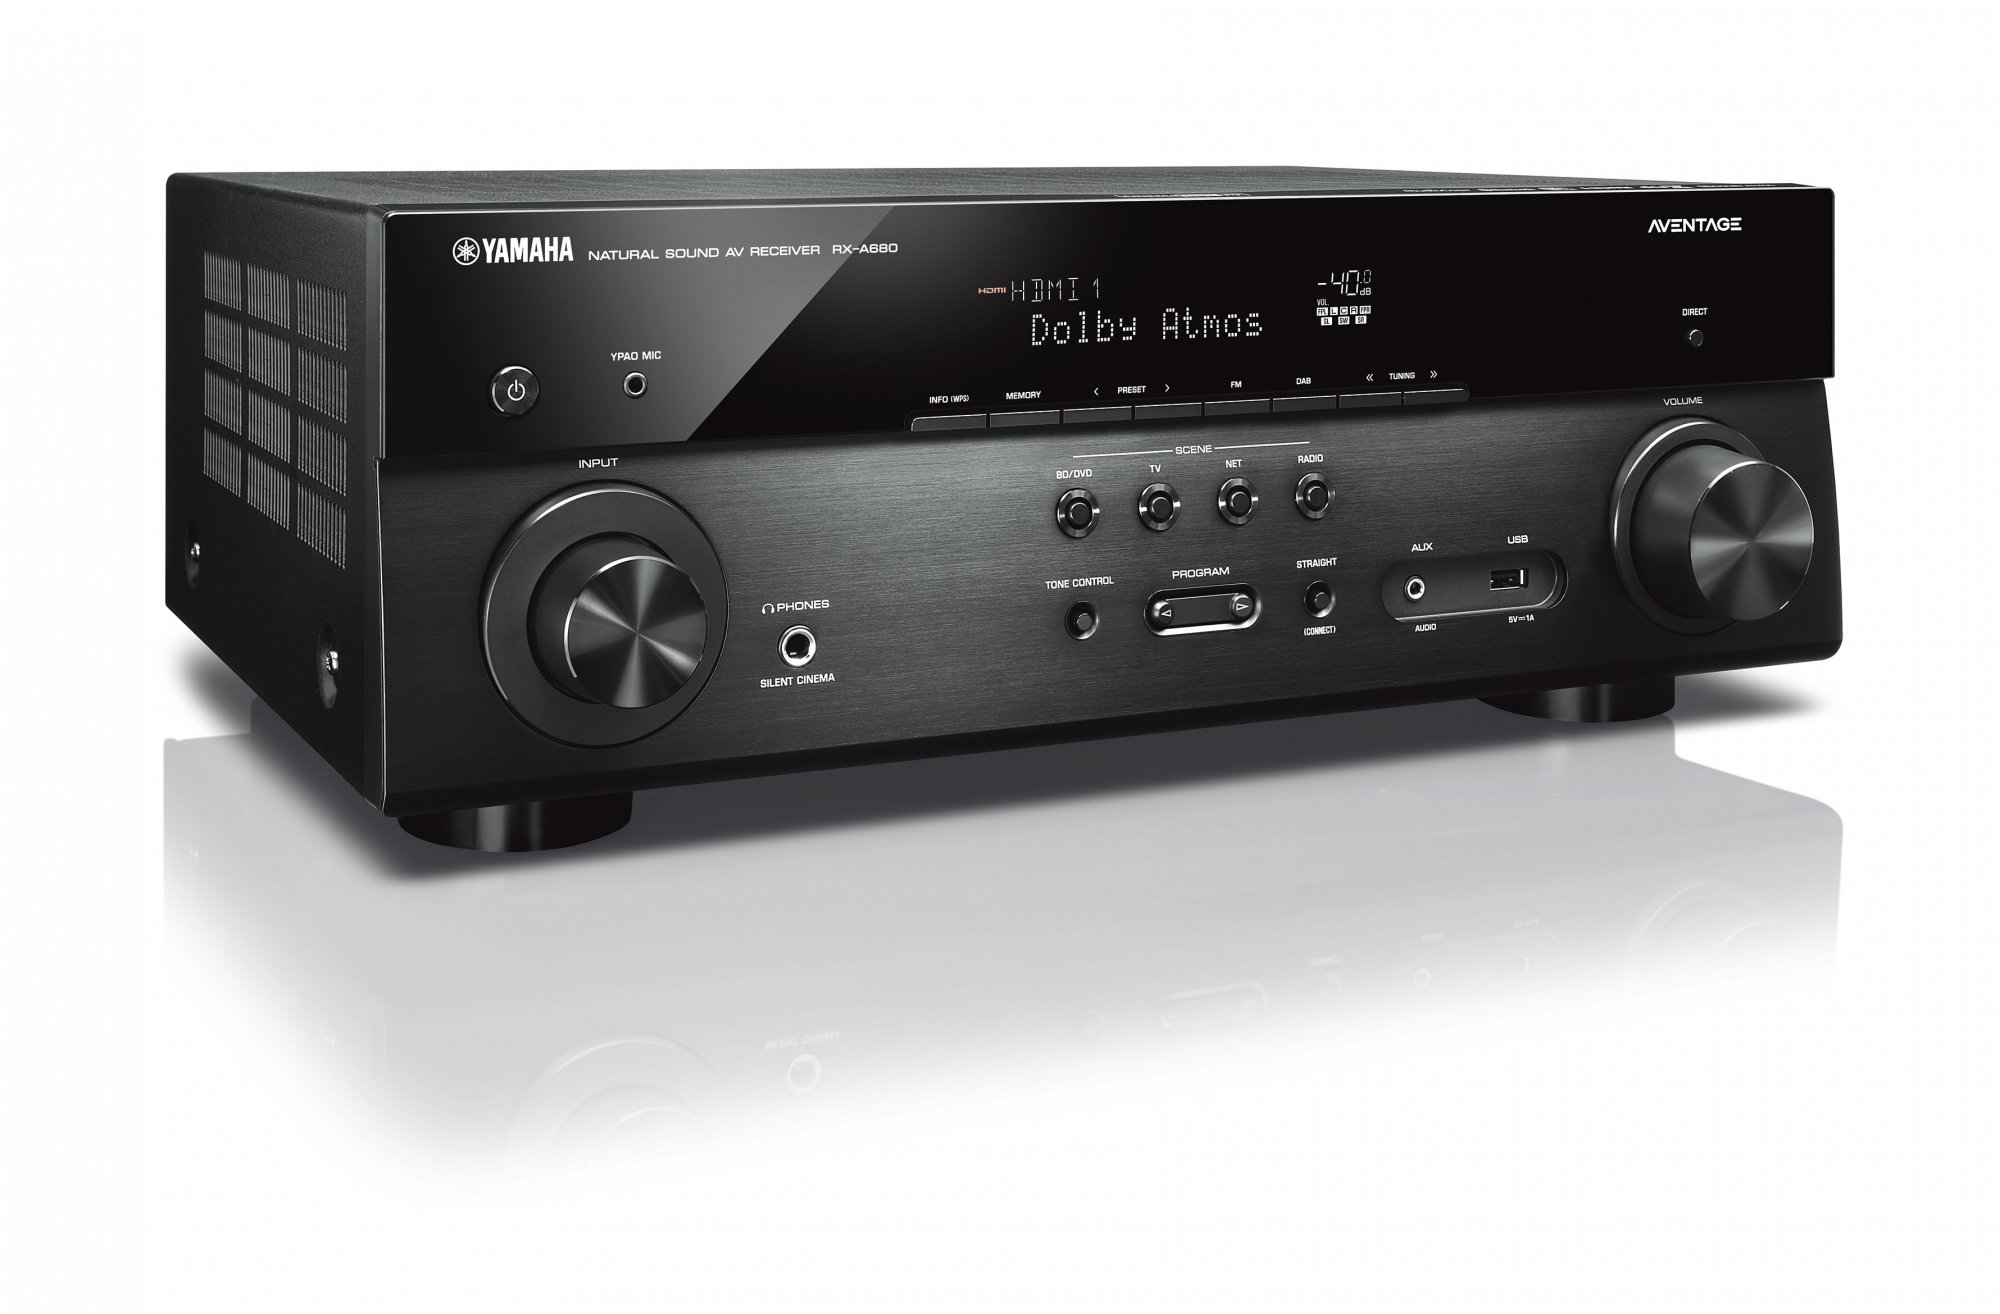 Yamaha Aventage RX-A680 Receiver